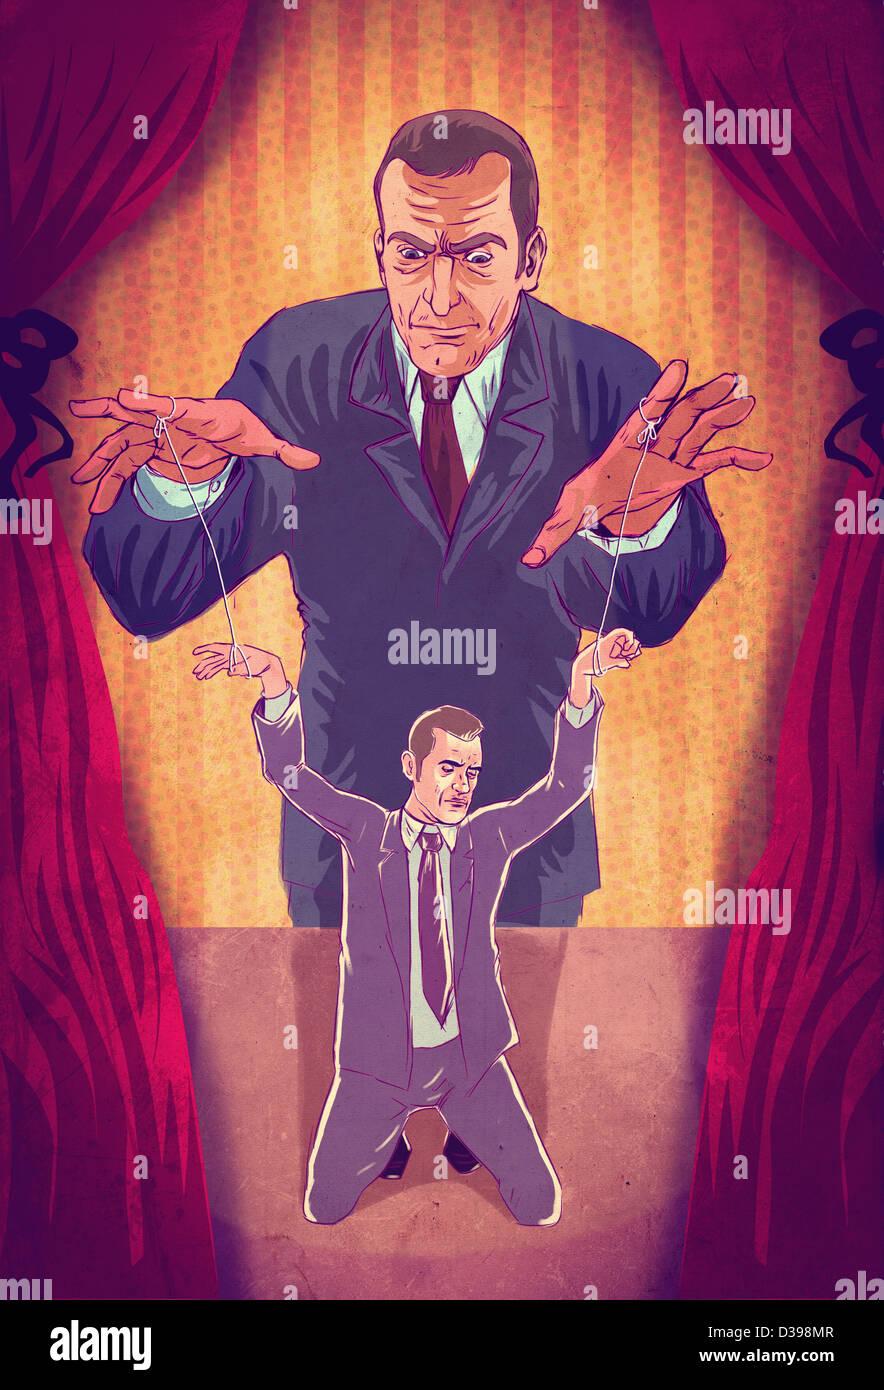 Illustrative concept of boss controlling executive as puppet - Stock Image